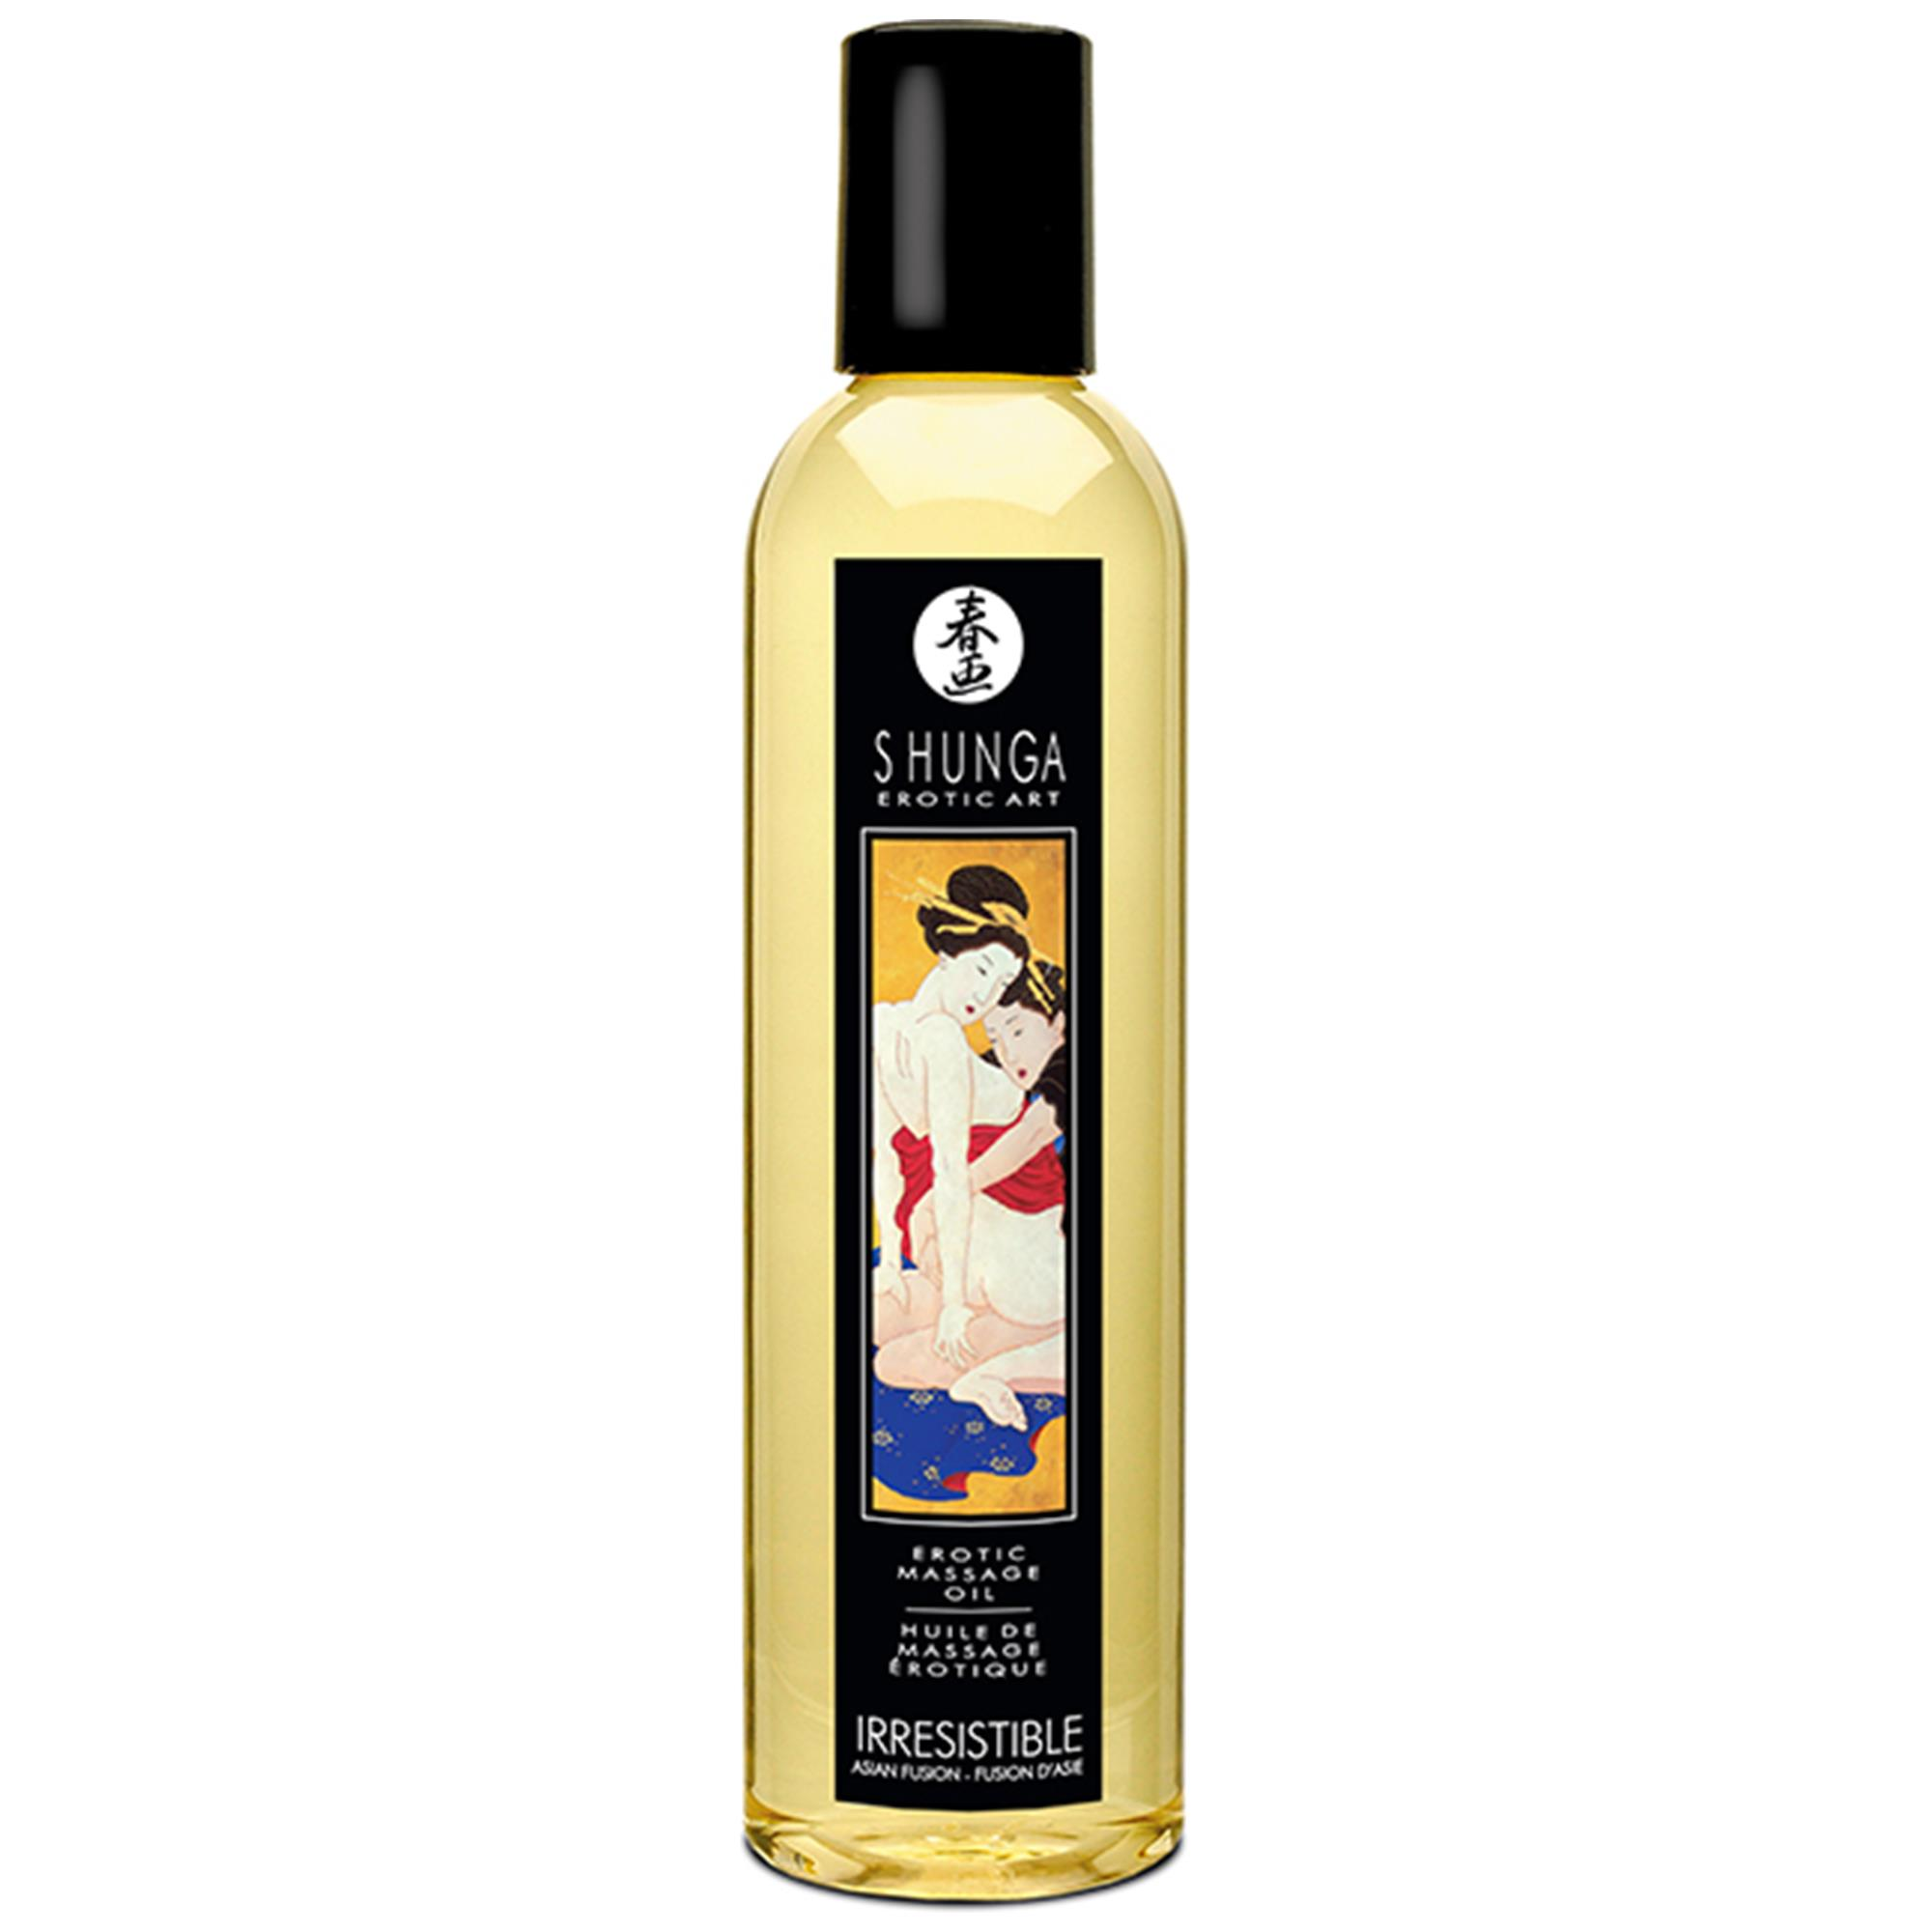 Shunga Massage Oil Asian Fusion (Irresistible) | Apotek, Massage, Massageolja | Intimast.se - Sexleksaker